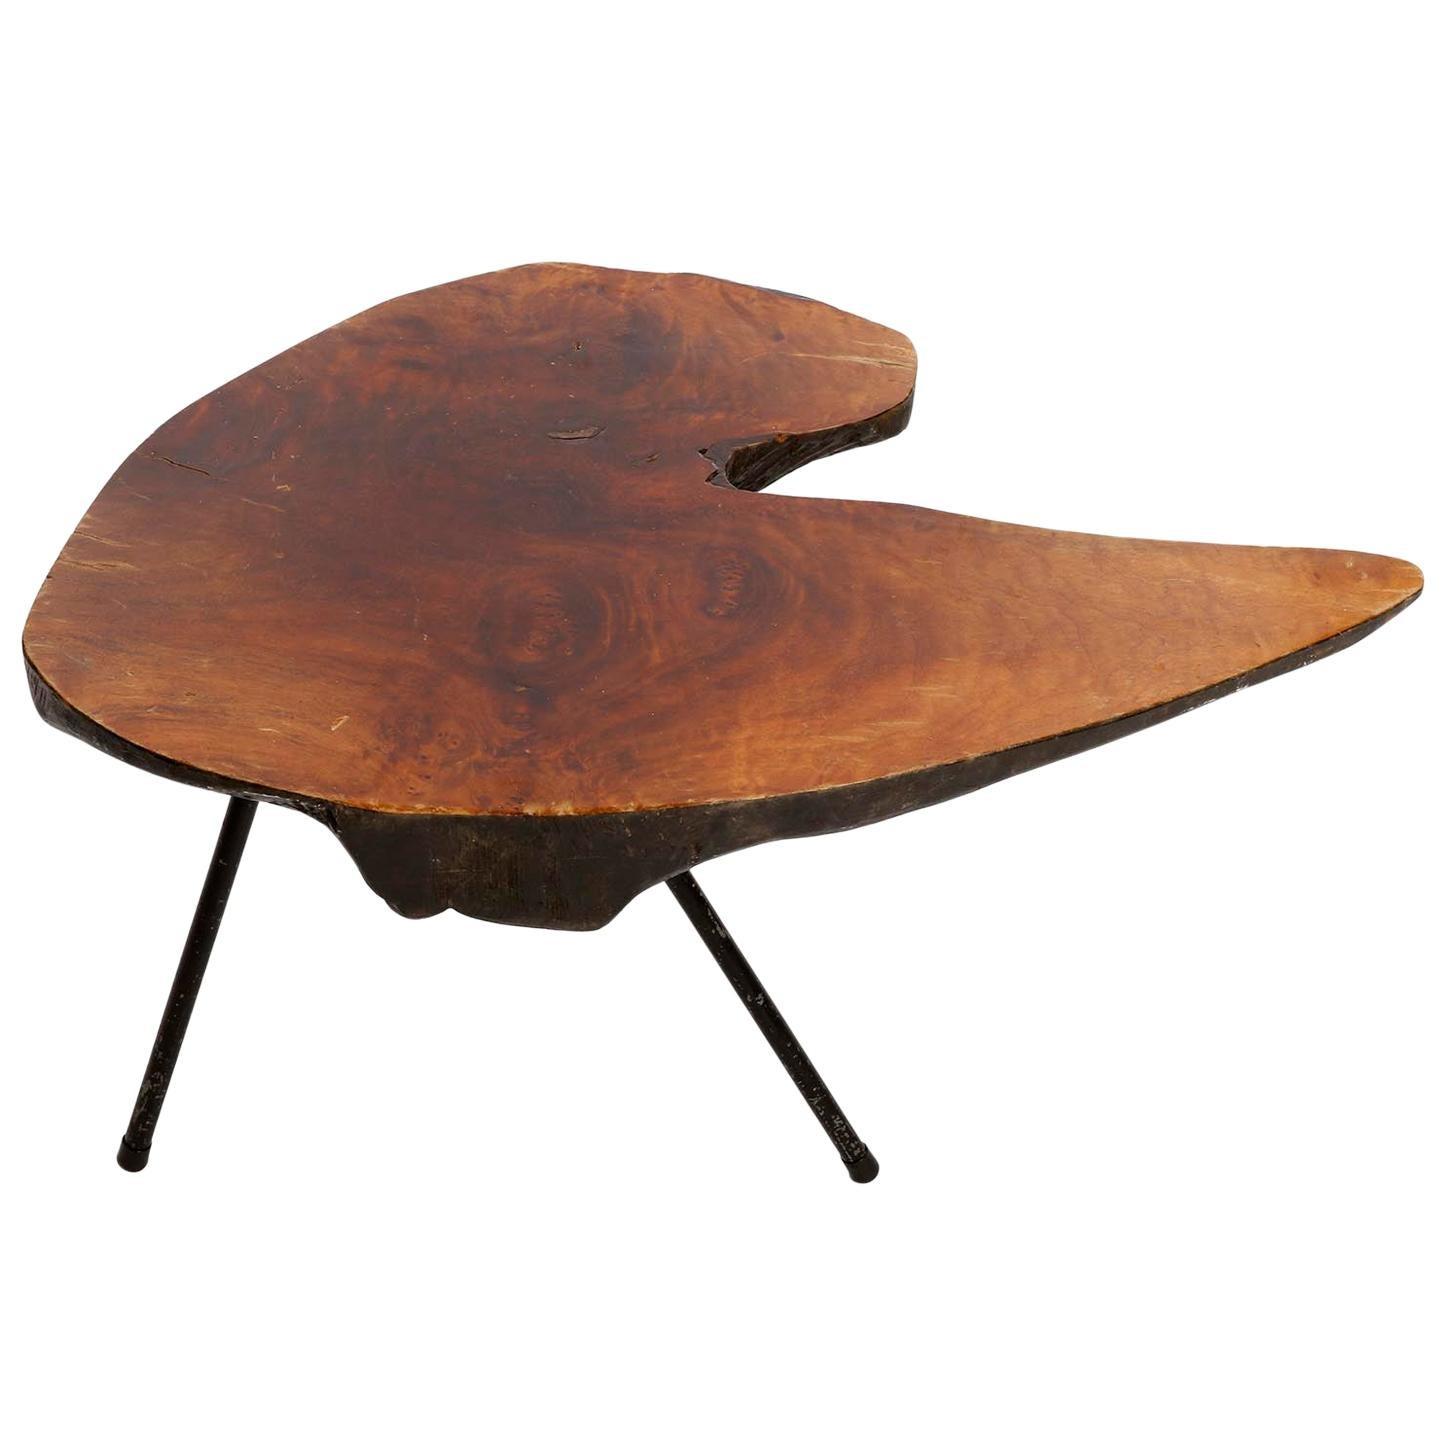 Tree Trunk Table, Carl Auböck, attributed, 1950s